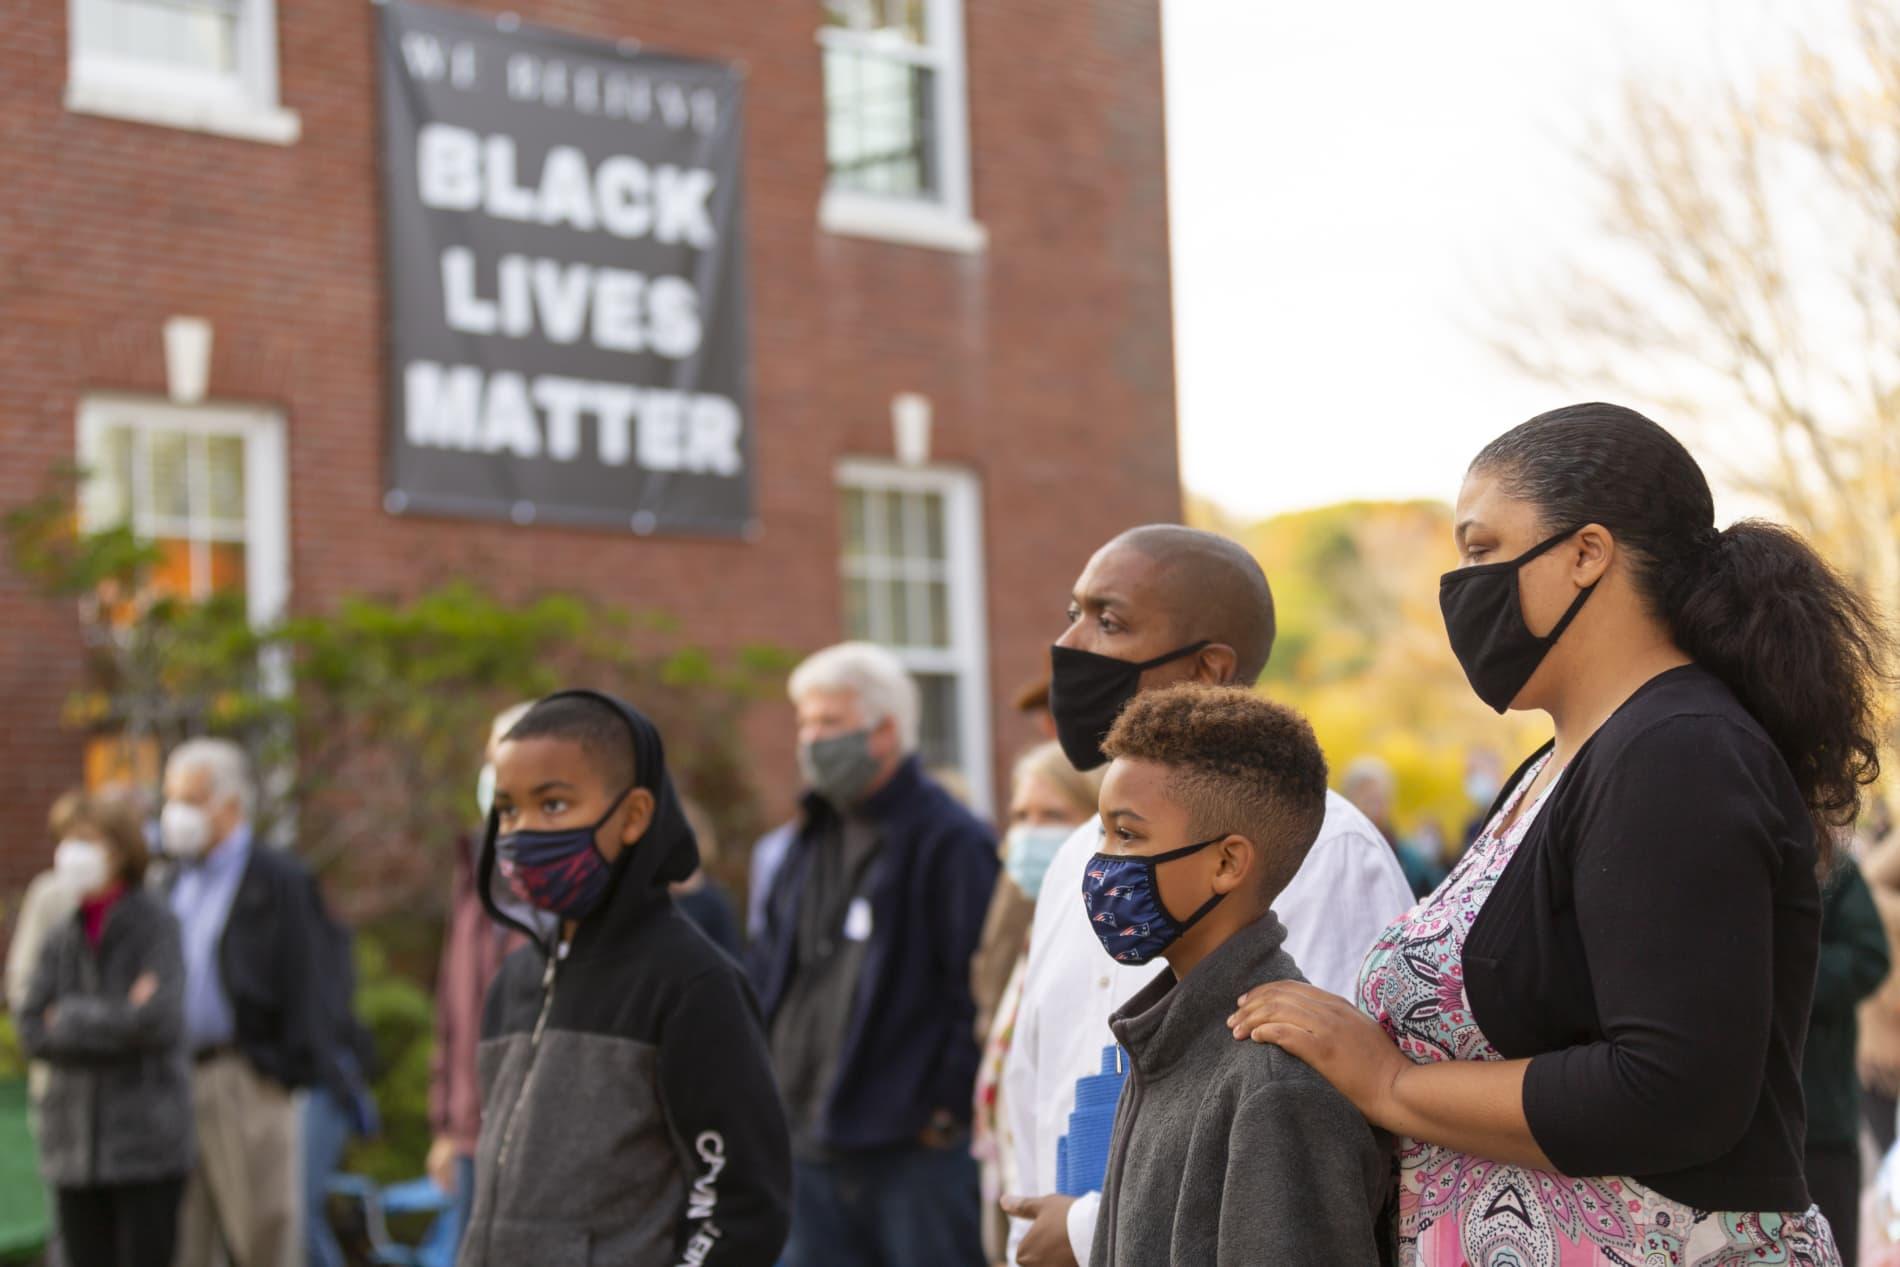 A Black family of four stands together with a Black Lives Matter sign in the background